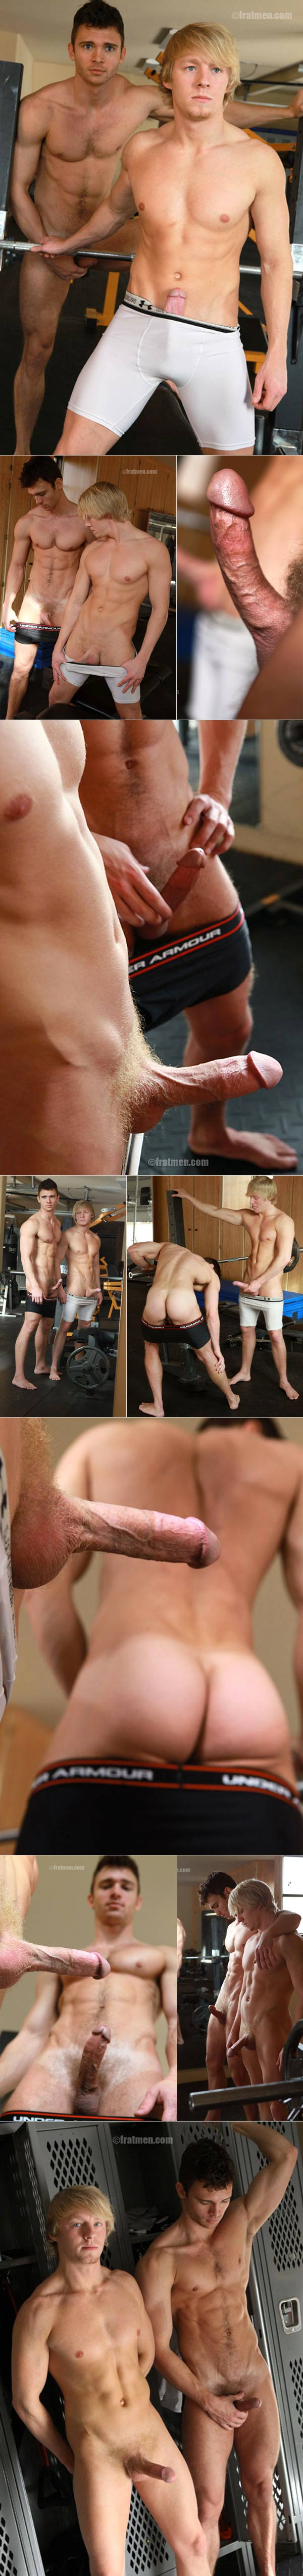 Calvin & Jayden at Fratmen.tv